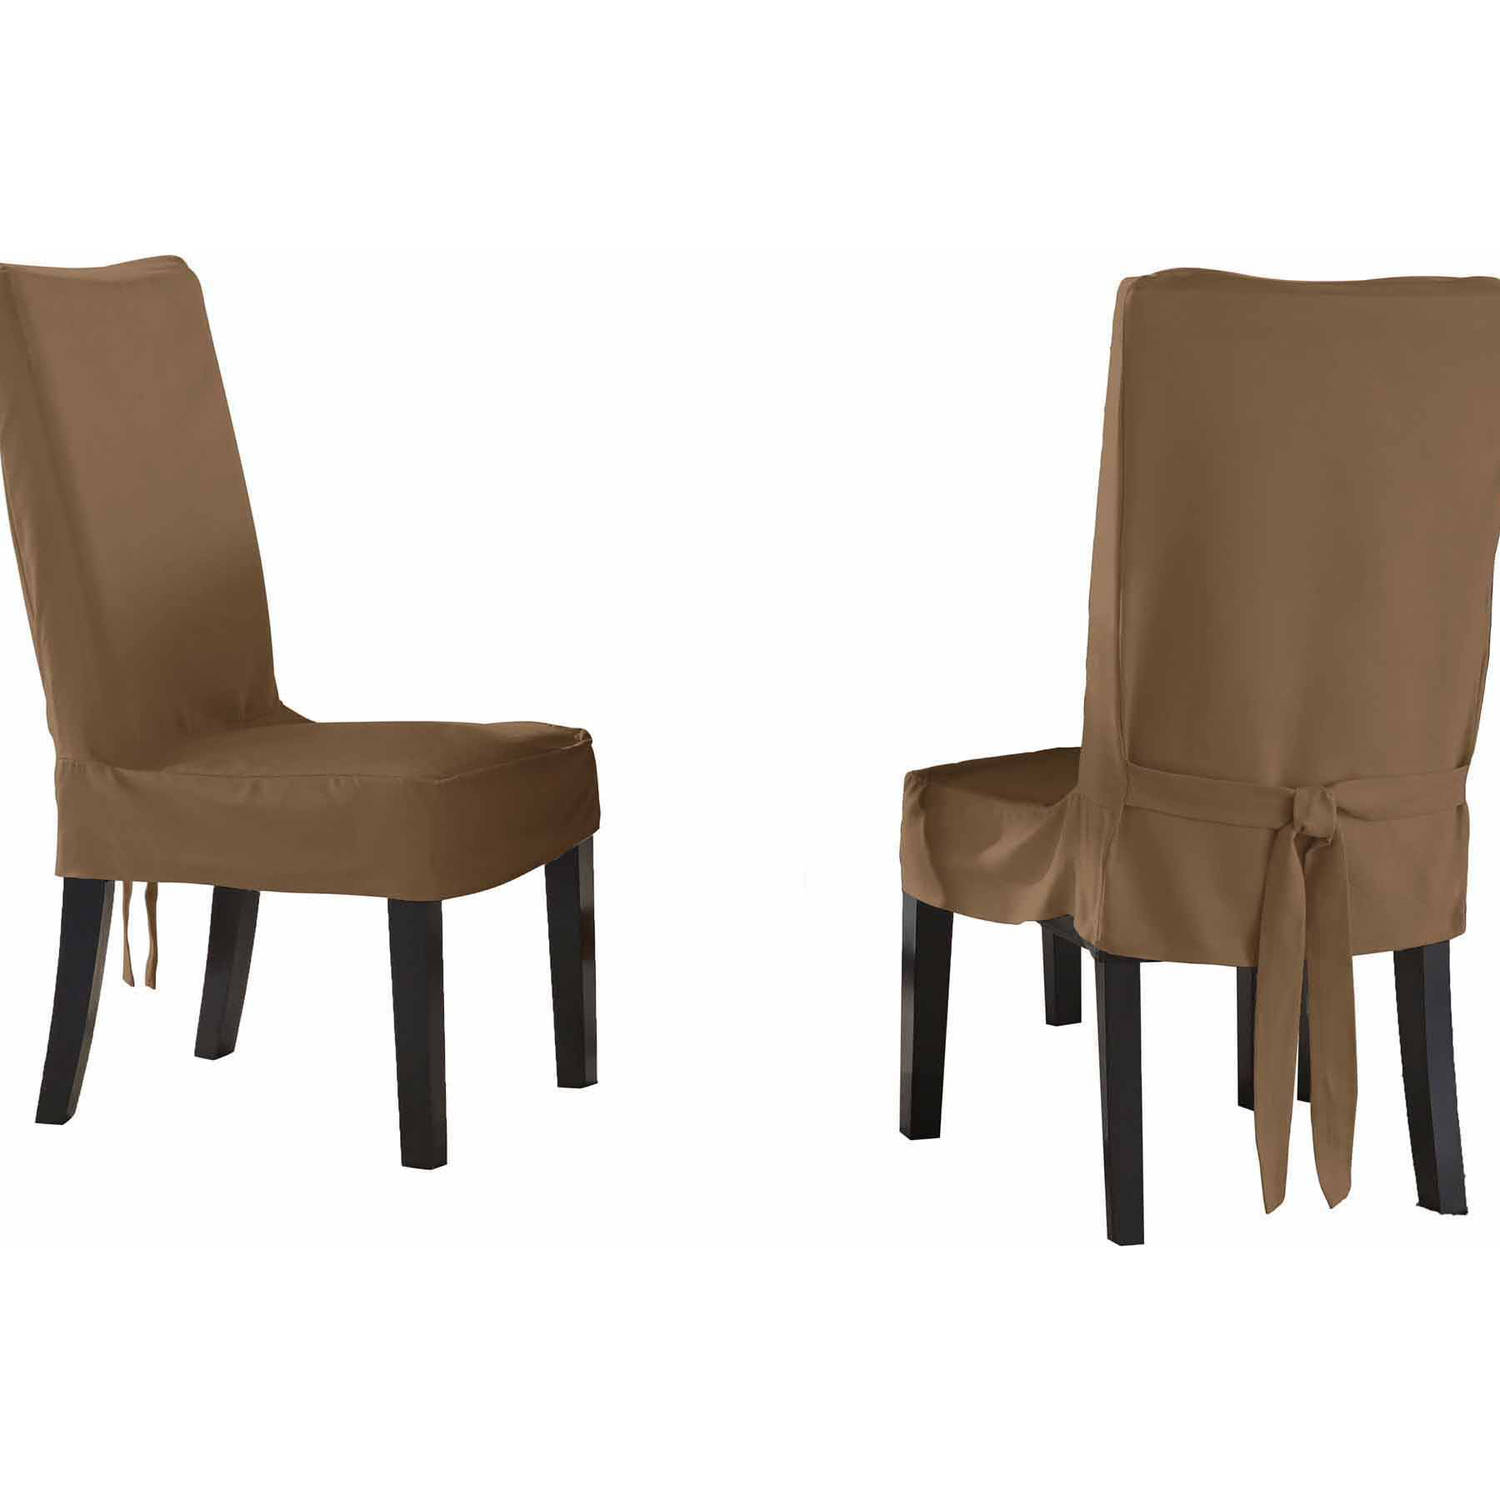 Serta Relaxed Fit Smooth Suede Furniture Slipcover, 2-Pack Dining/Parsons Chair, Short Skirt